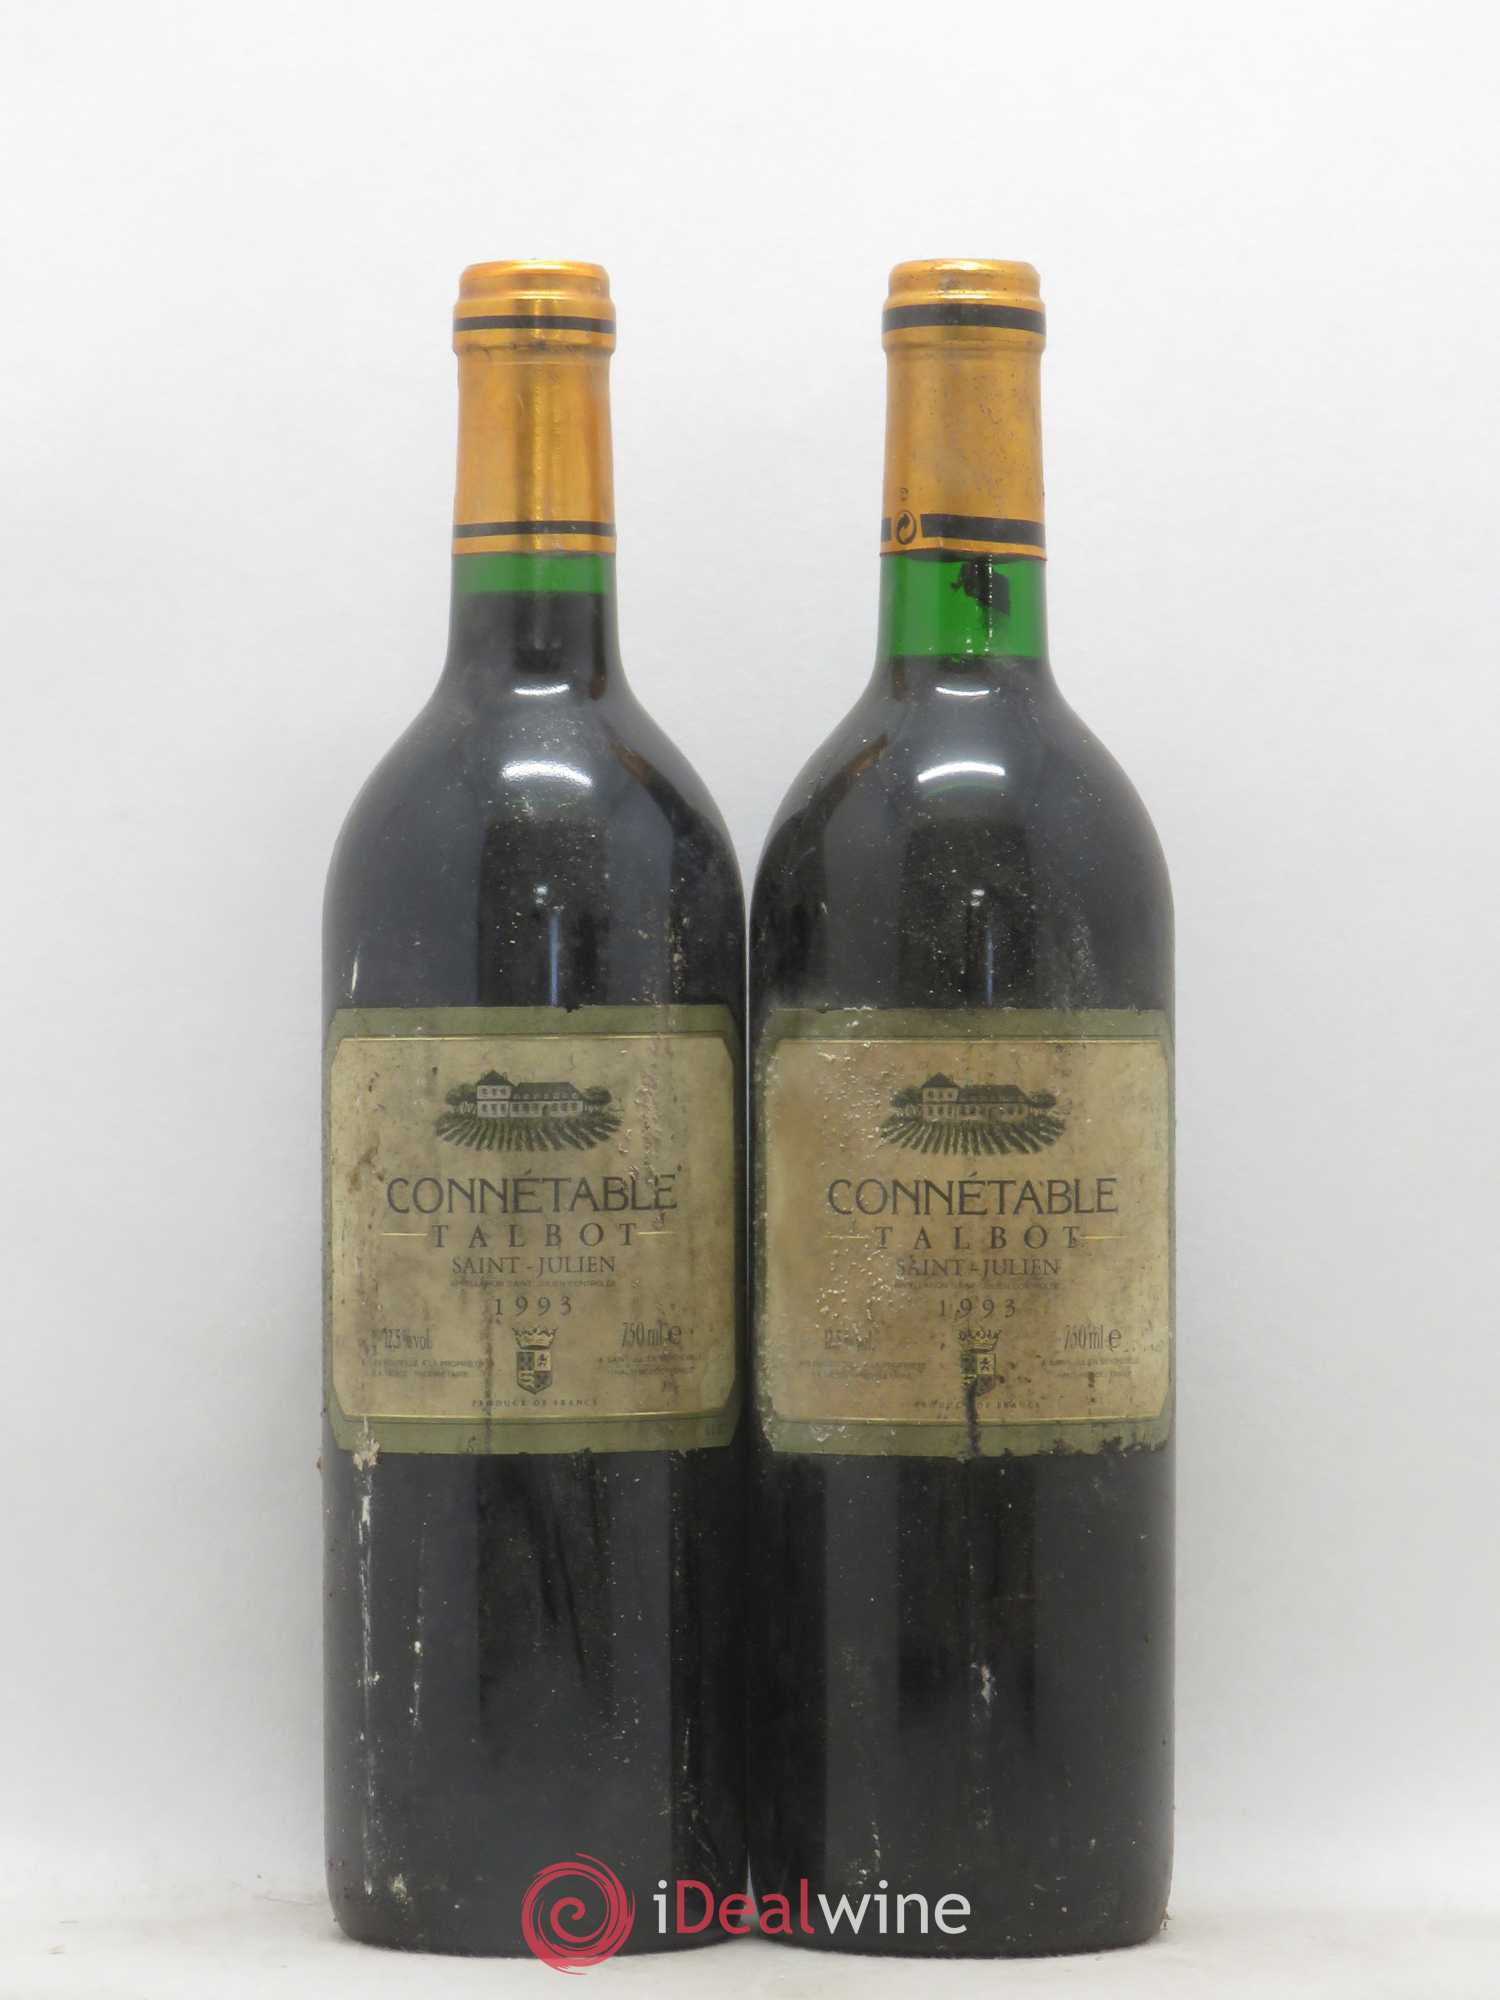 Connétable de Talbot Second vin  1993 - Lot de 2 Bouteilles